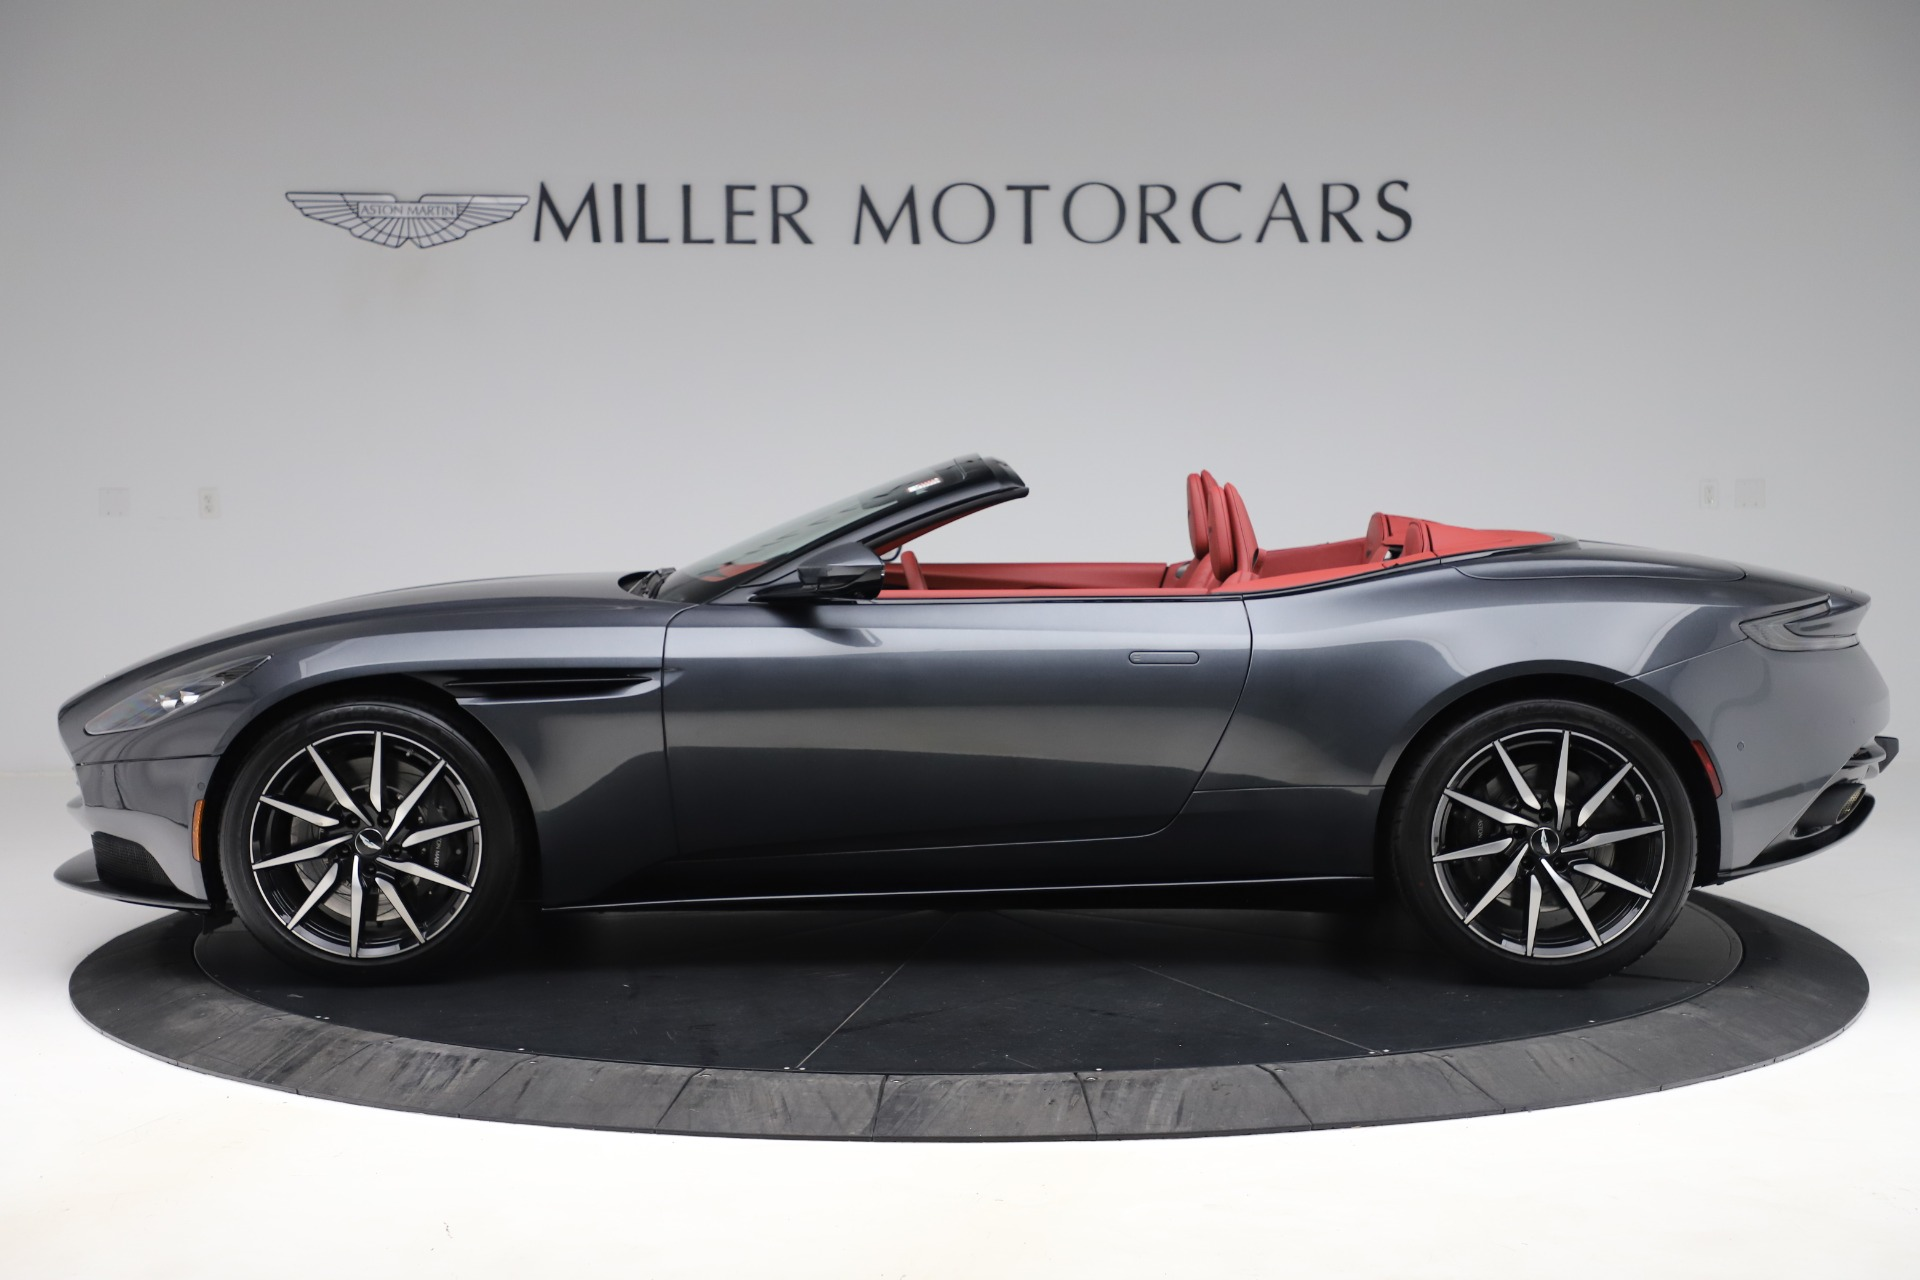 Pre Owned 2020 Aston Martin Db11 Volante Convertible For Sale Special Pricing Mclaren Greenwich Stock A1424b